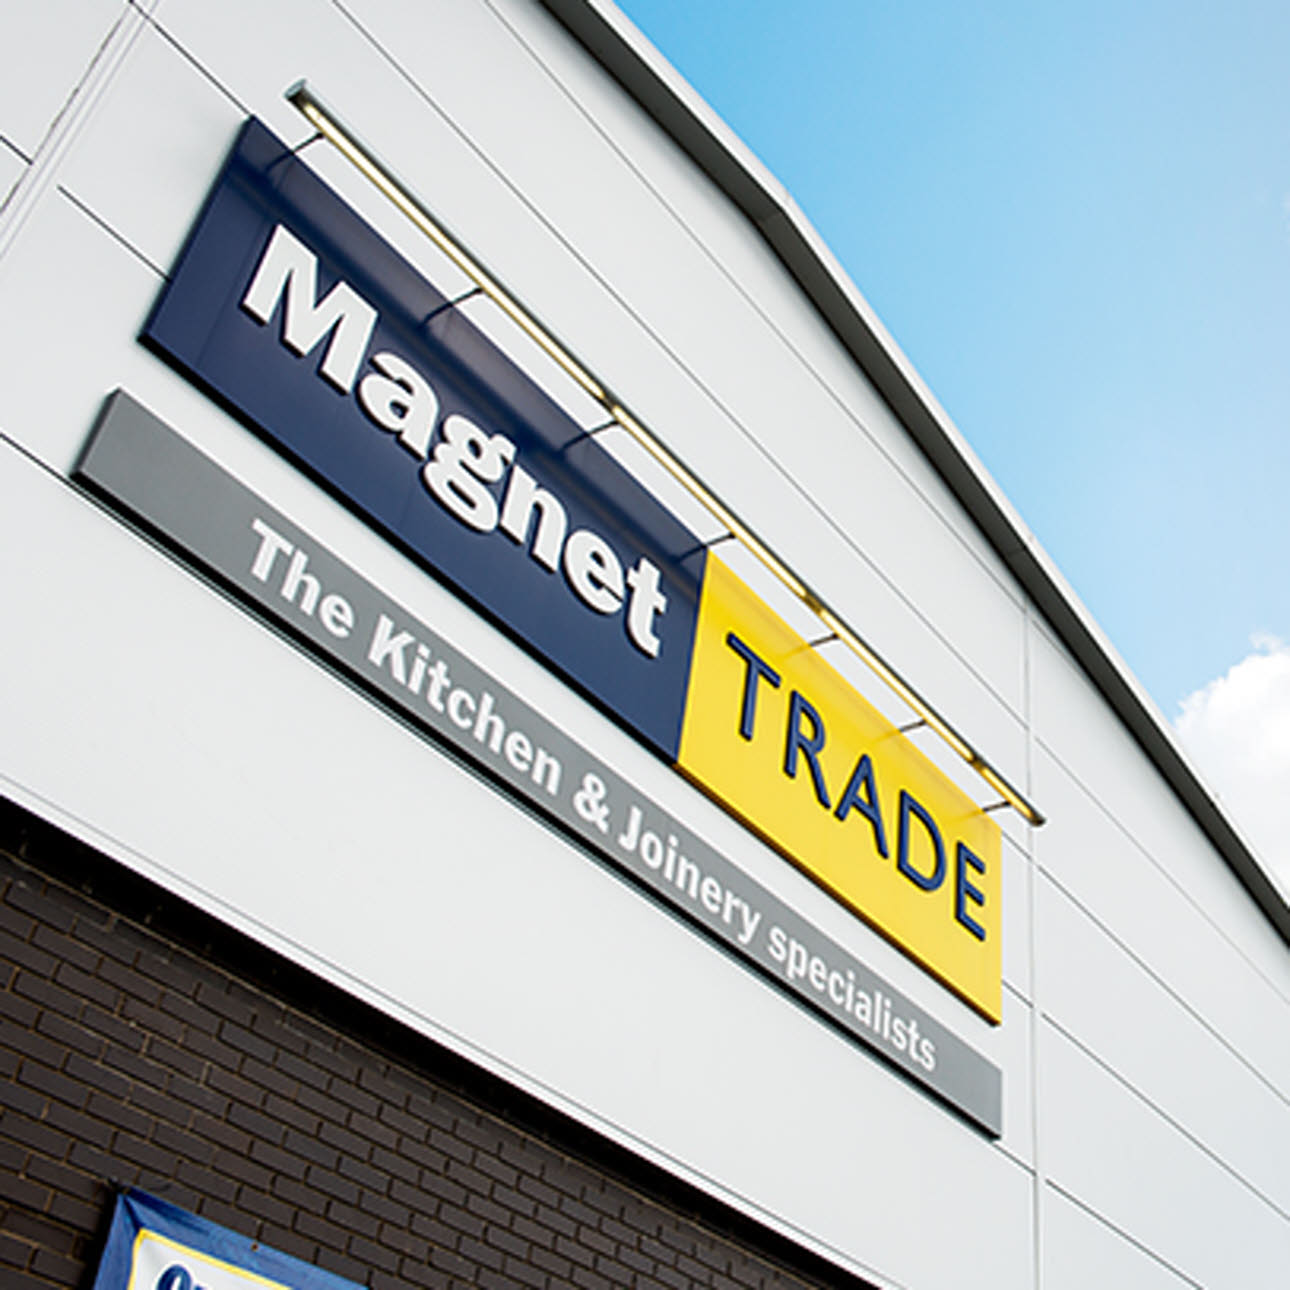 Magnet Trade logo on external shot of store